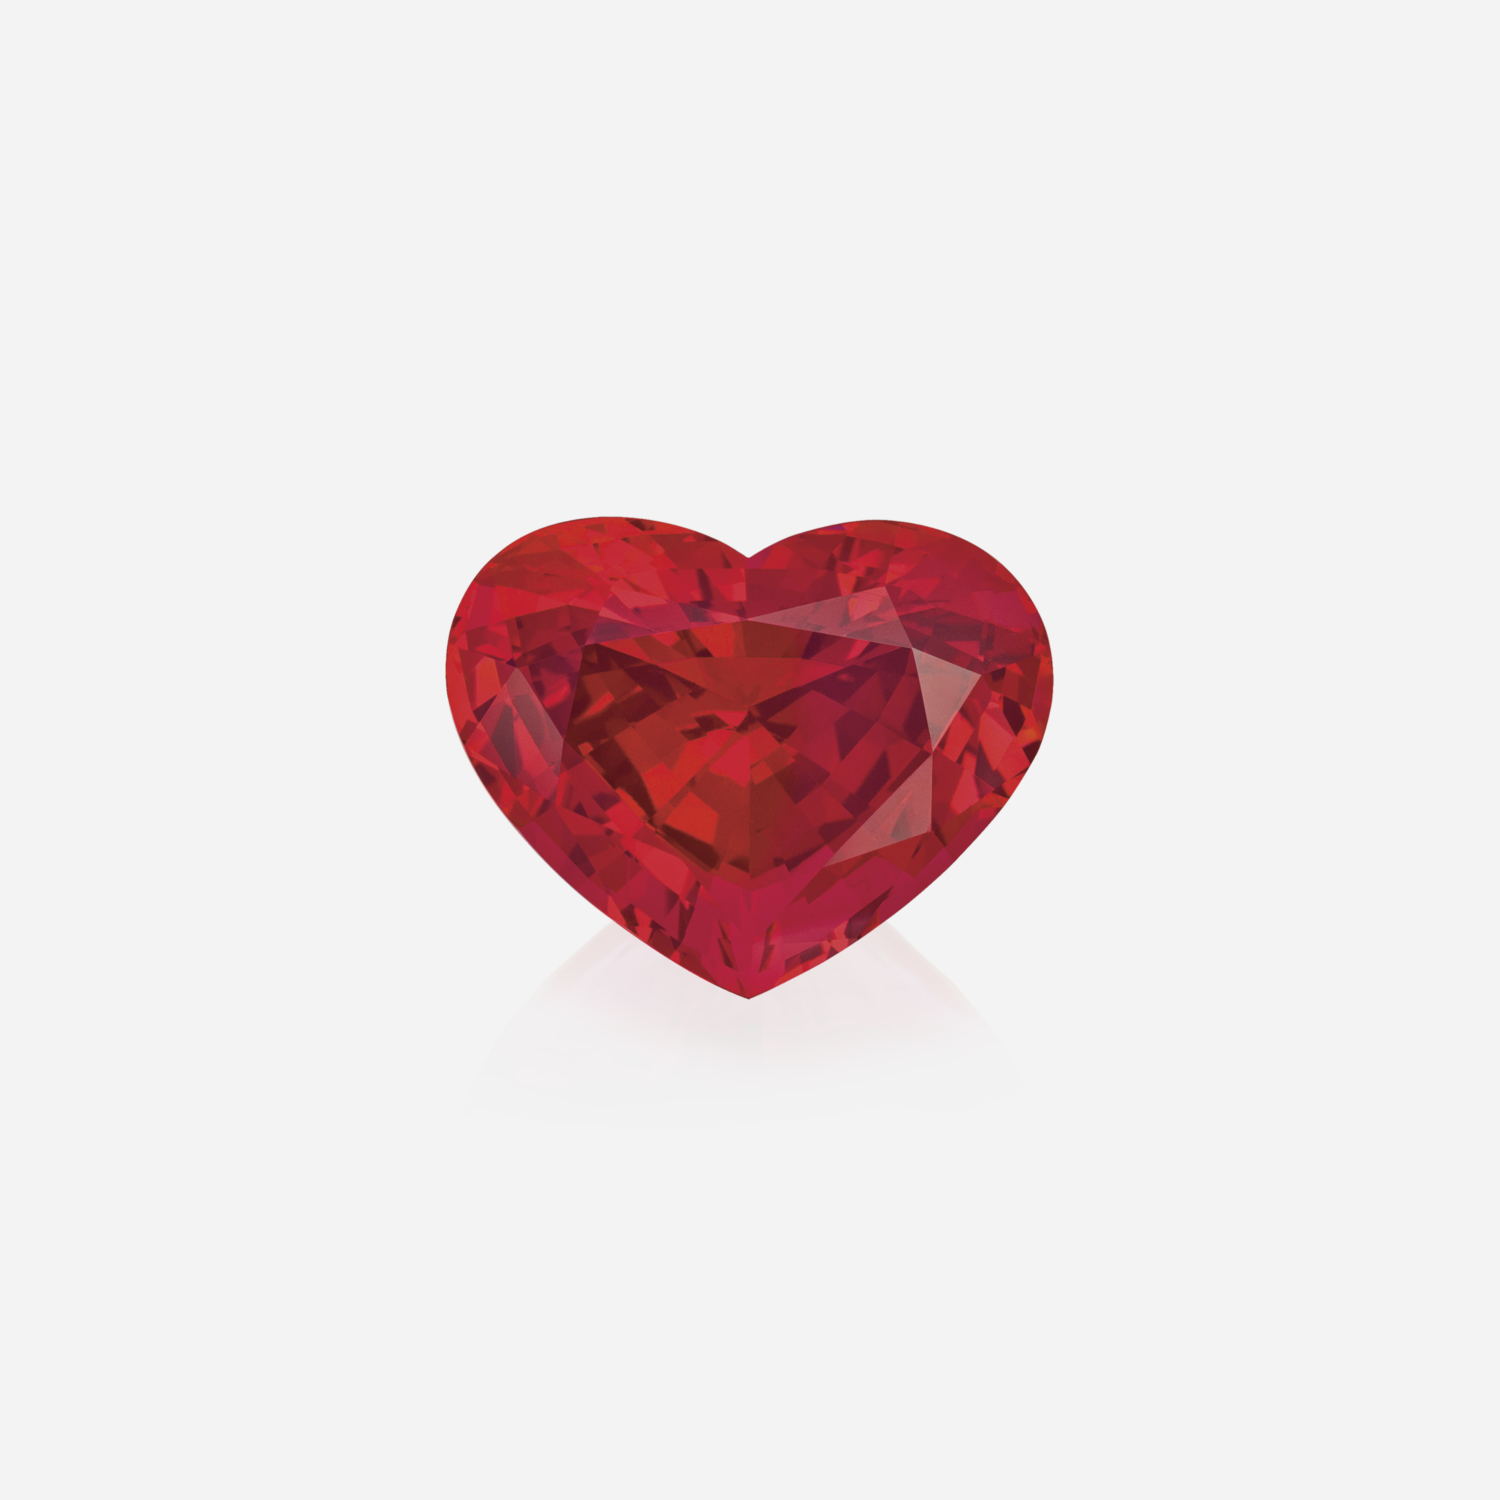 Heartshape Red Spinel 31